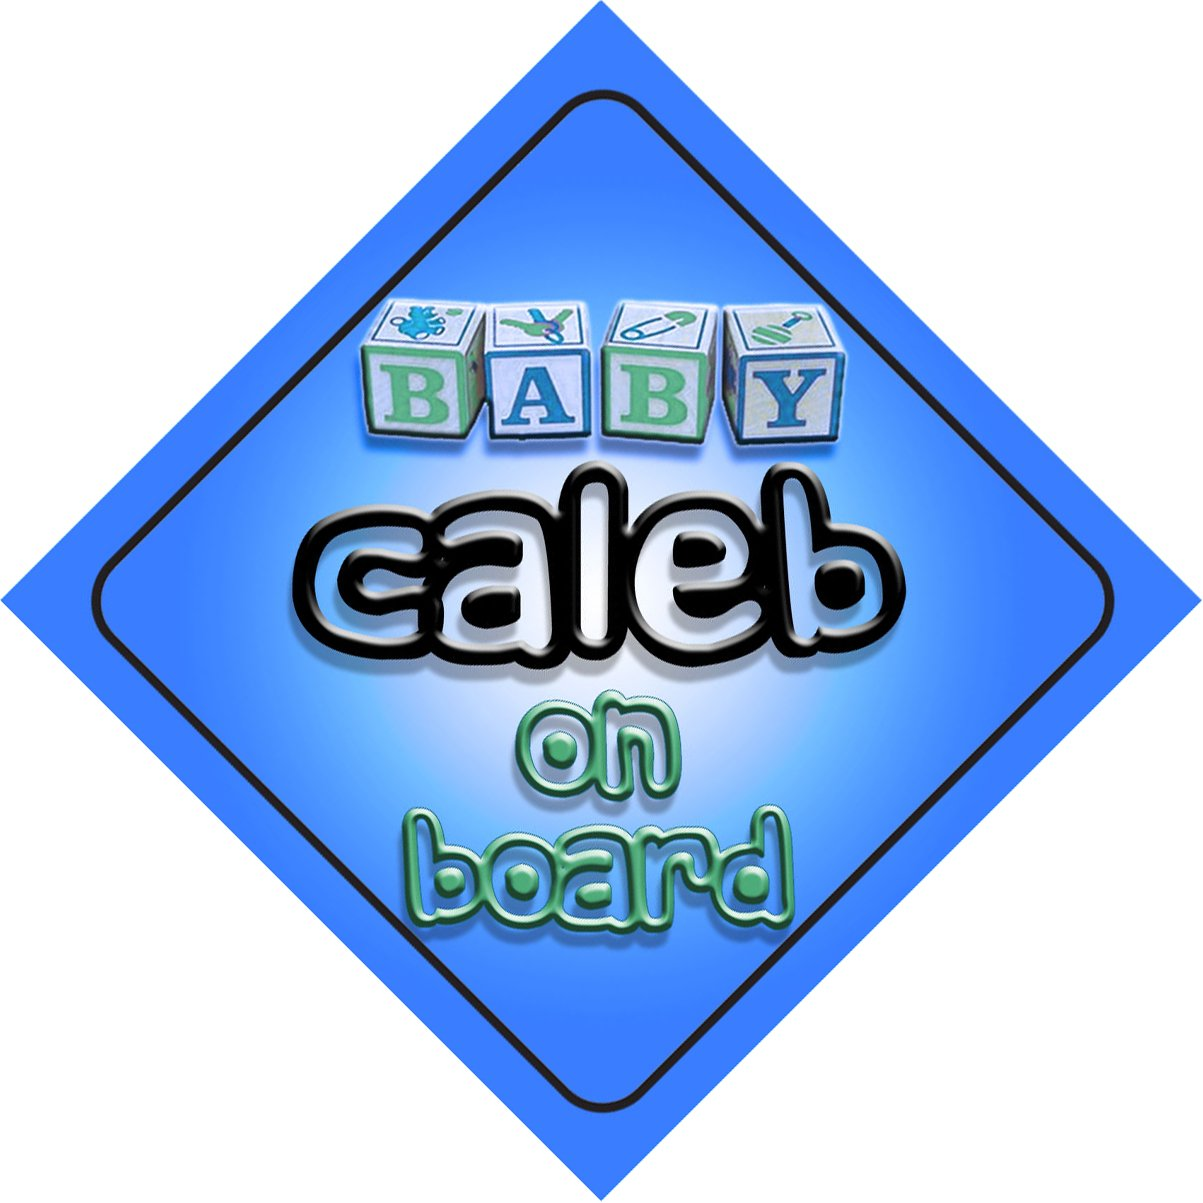 Baby Boy Caleb on board novelty car sign gift / present for new child / newborn baby by mybabyonboard UK   B008D1ED1K